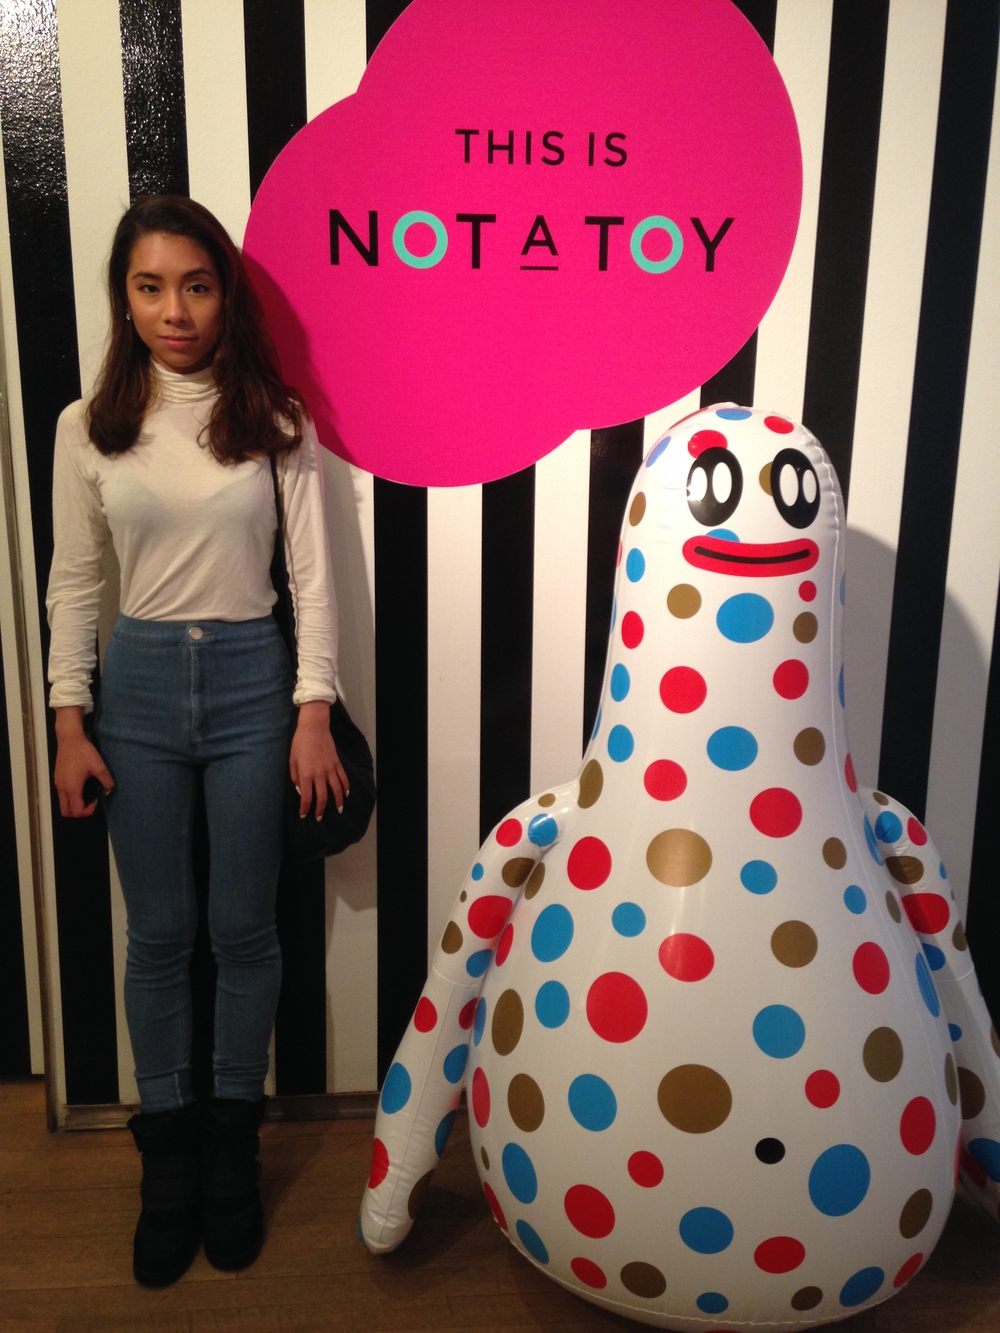 Date with the teen at the Design Exchange art installation of THIS IS NOT A TOY